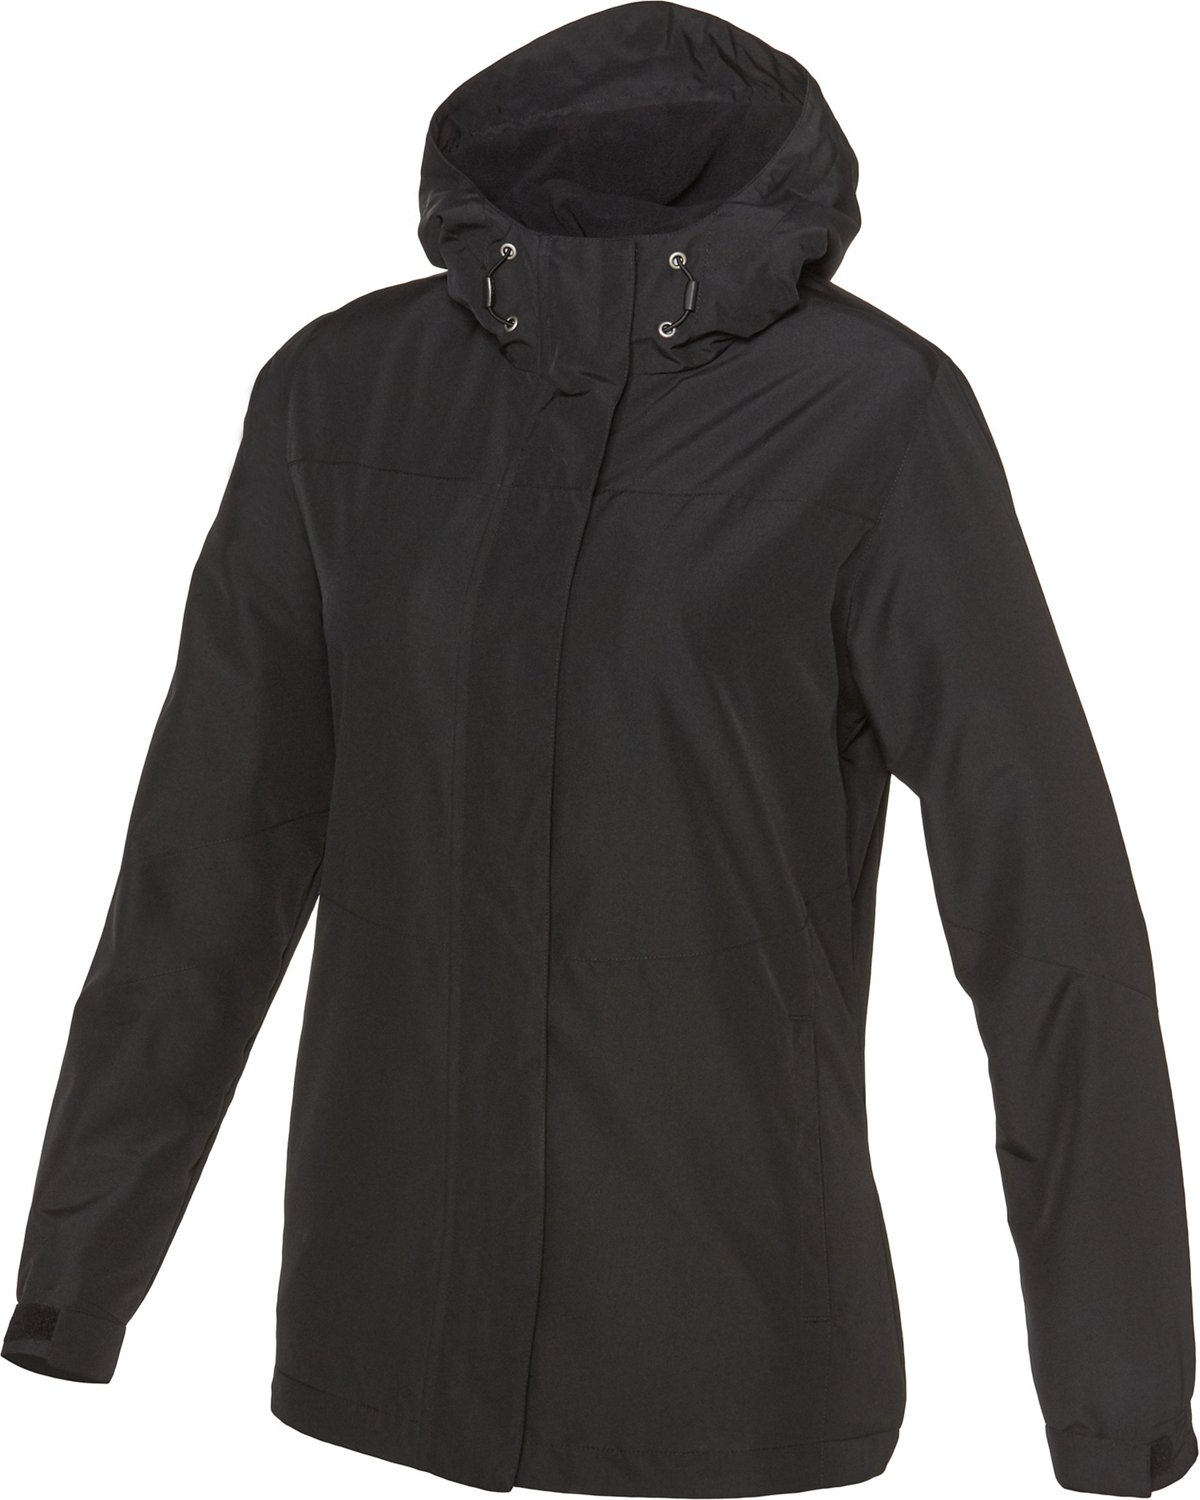 e5bc4a679 Jackets for Women